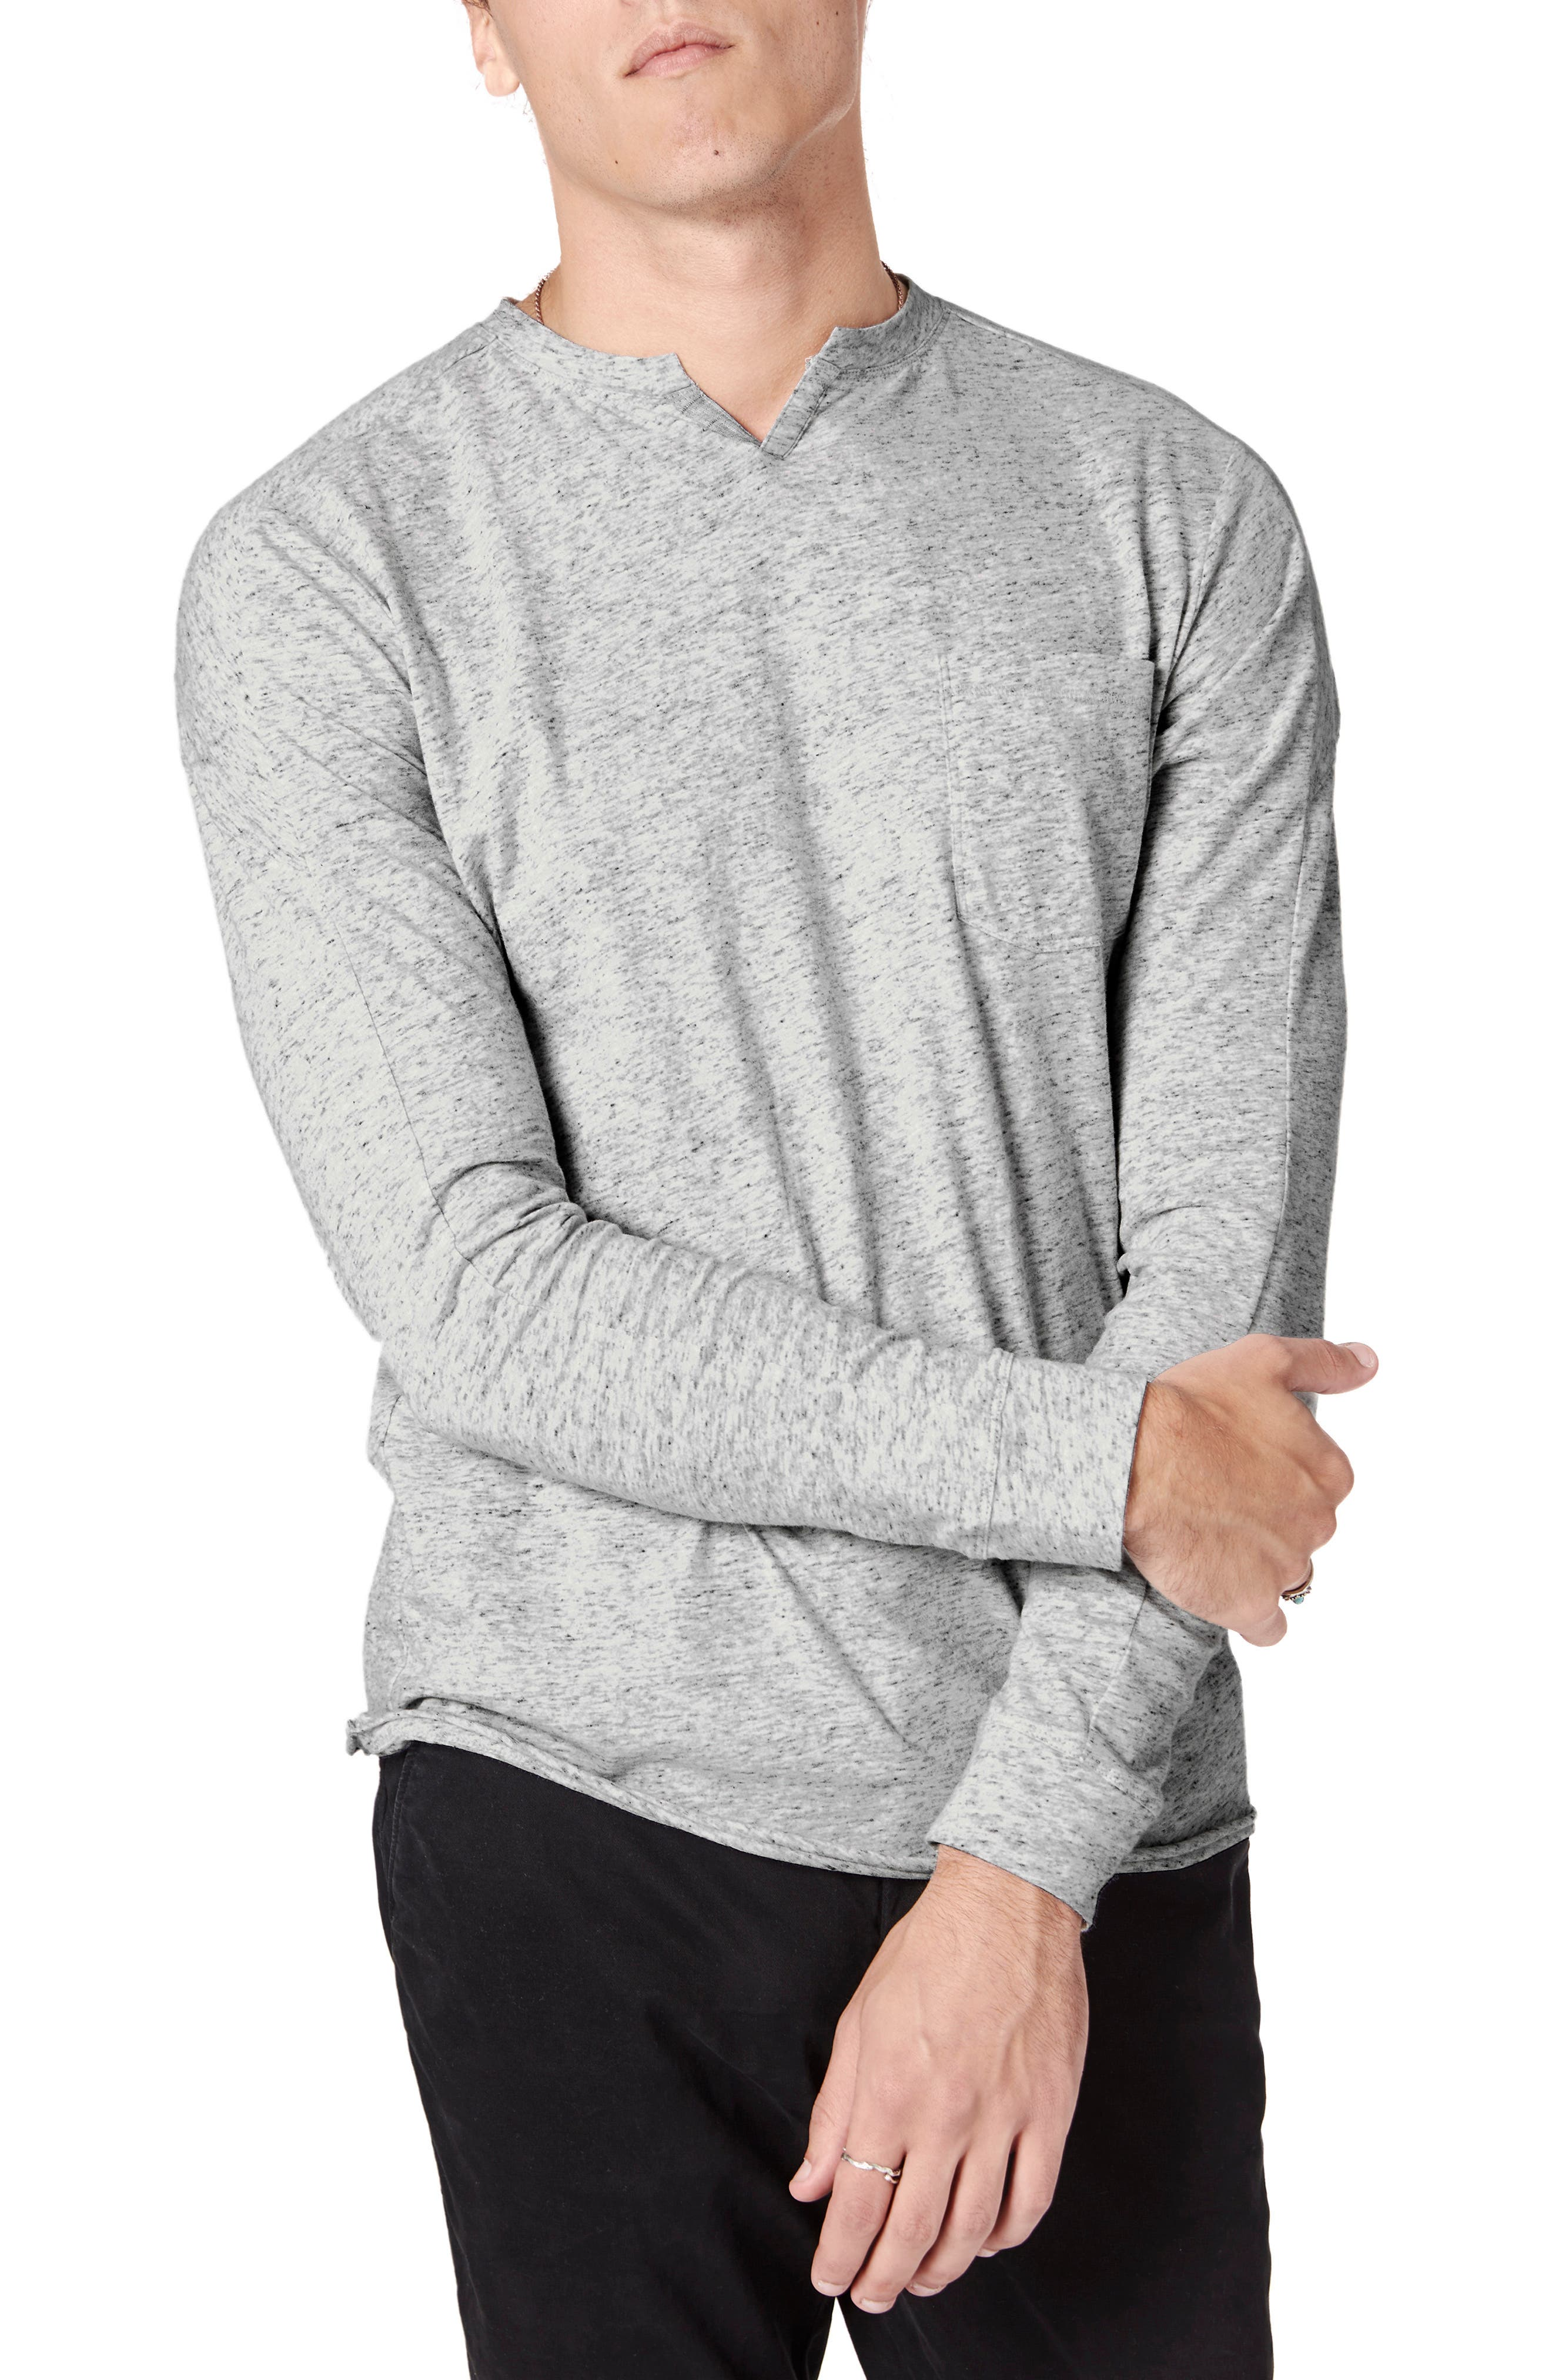 Softly slubbed cotton brings mottled color and texture to a long-sleeve T-shirt done with a sporty notched neck for a look that\\\'s great layered or on its own. Style Name: Good Man Brand Victory Slim Fit Notch Neck Long Sleeve T-Shirt. Style Number: 5862591. Available in stores.